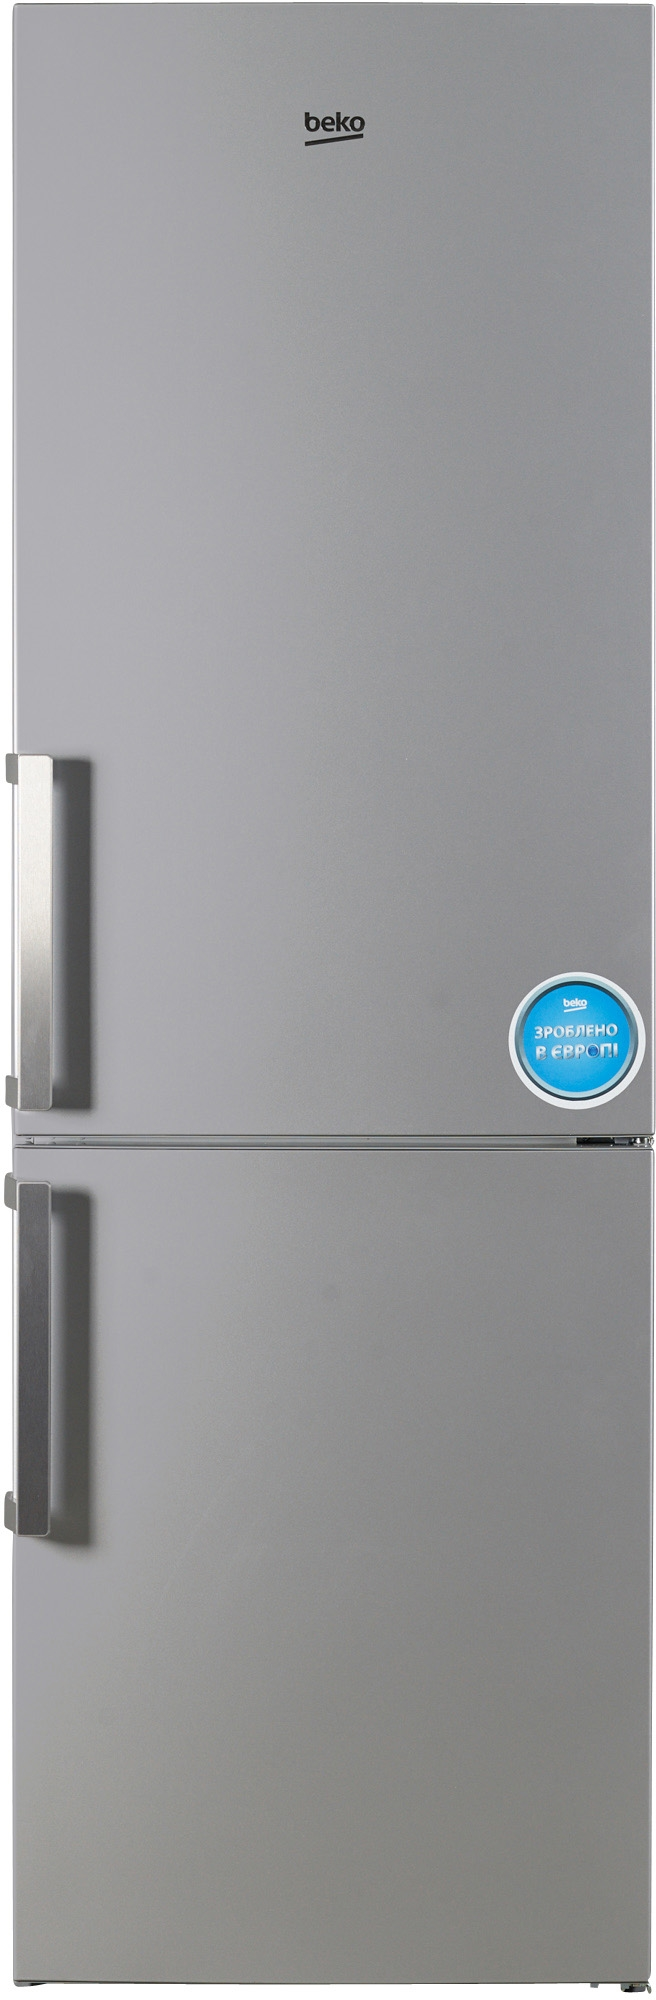 Marca Beko Opinioni. Affordable Cuptor Electric Beko Bimzgcs With ...